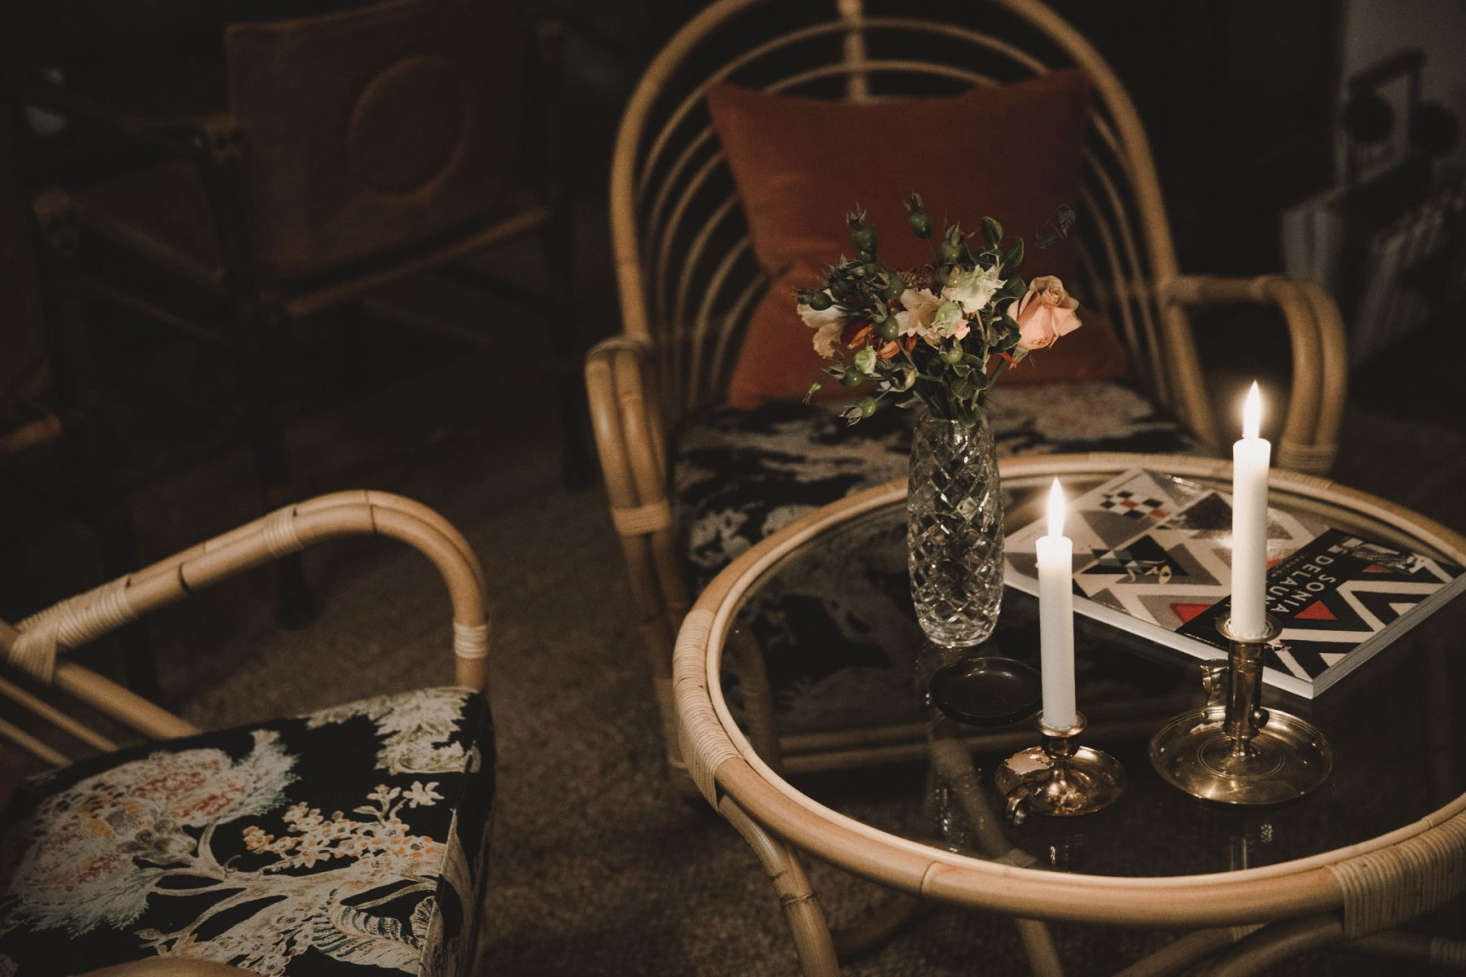 Candles and caned furniture.